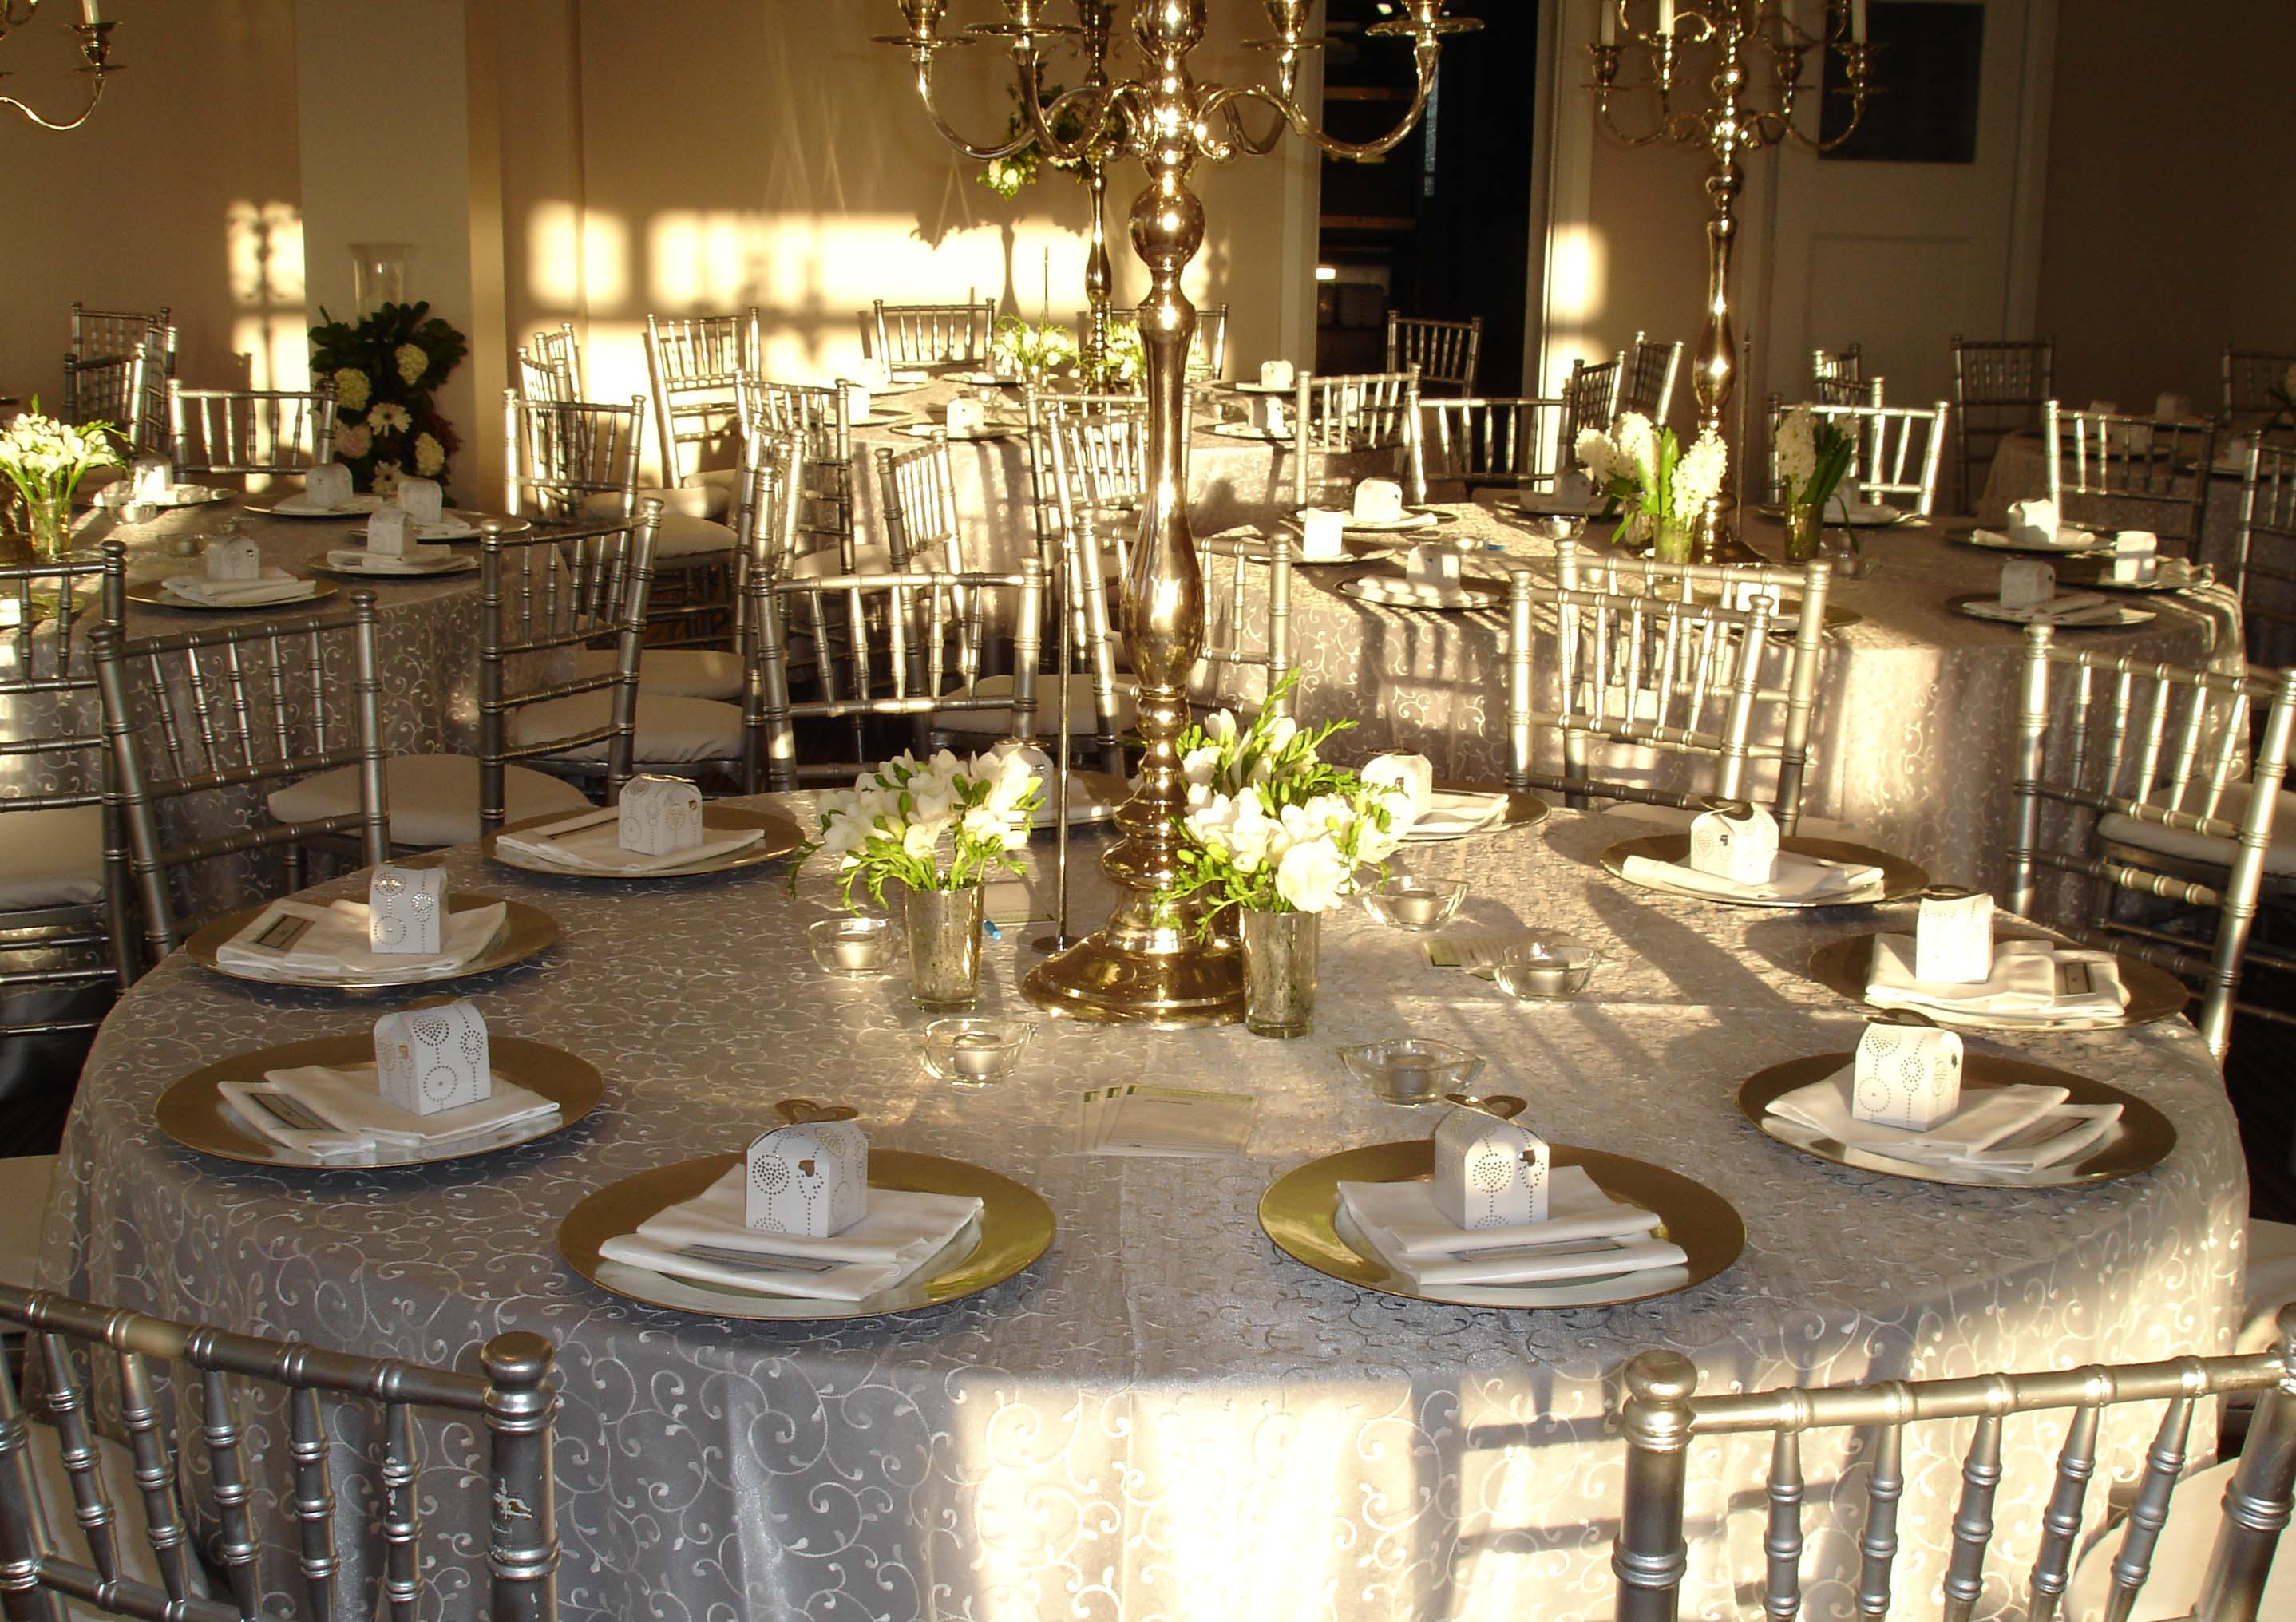 Wedding Table Decorations Beautiful Table Settings for Weddings Of Delightful 41 Ideas Wedding Table Decorations